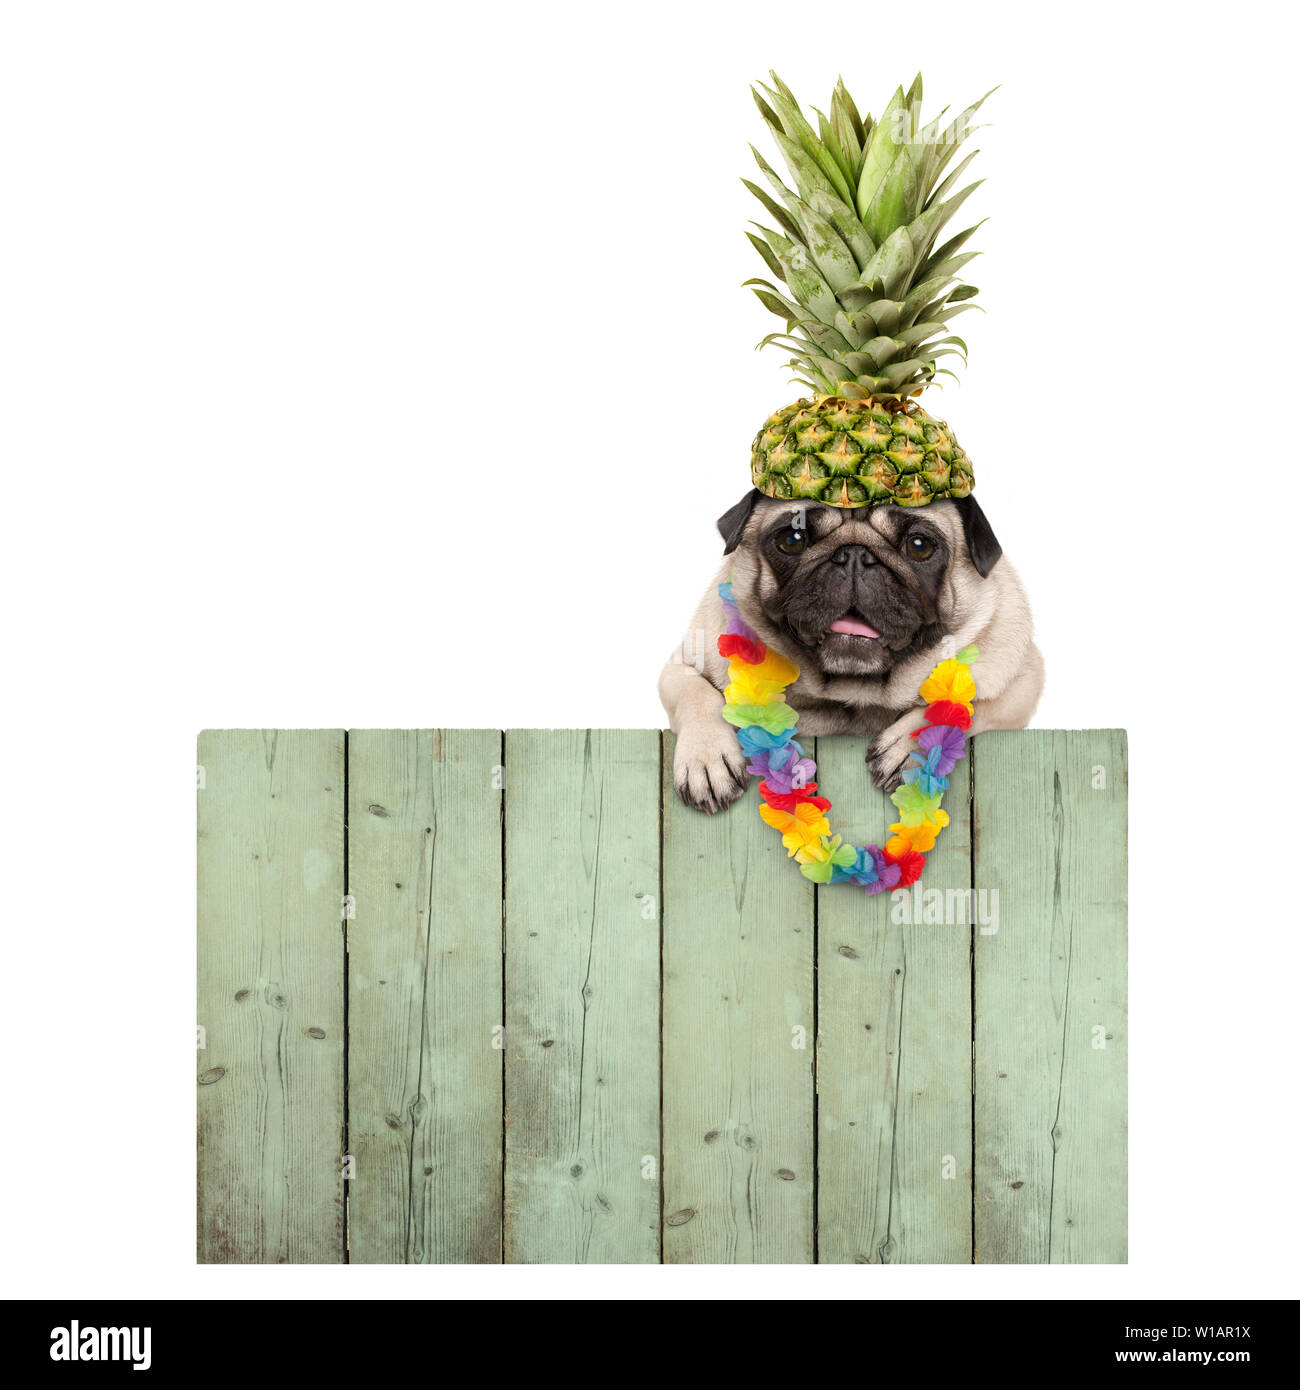 frolic smiling tropical summer pug puppy dog with flower garland, hanging with paws on reclaimed wooden fence board, isolated on white background Stock Photo